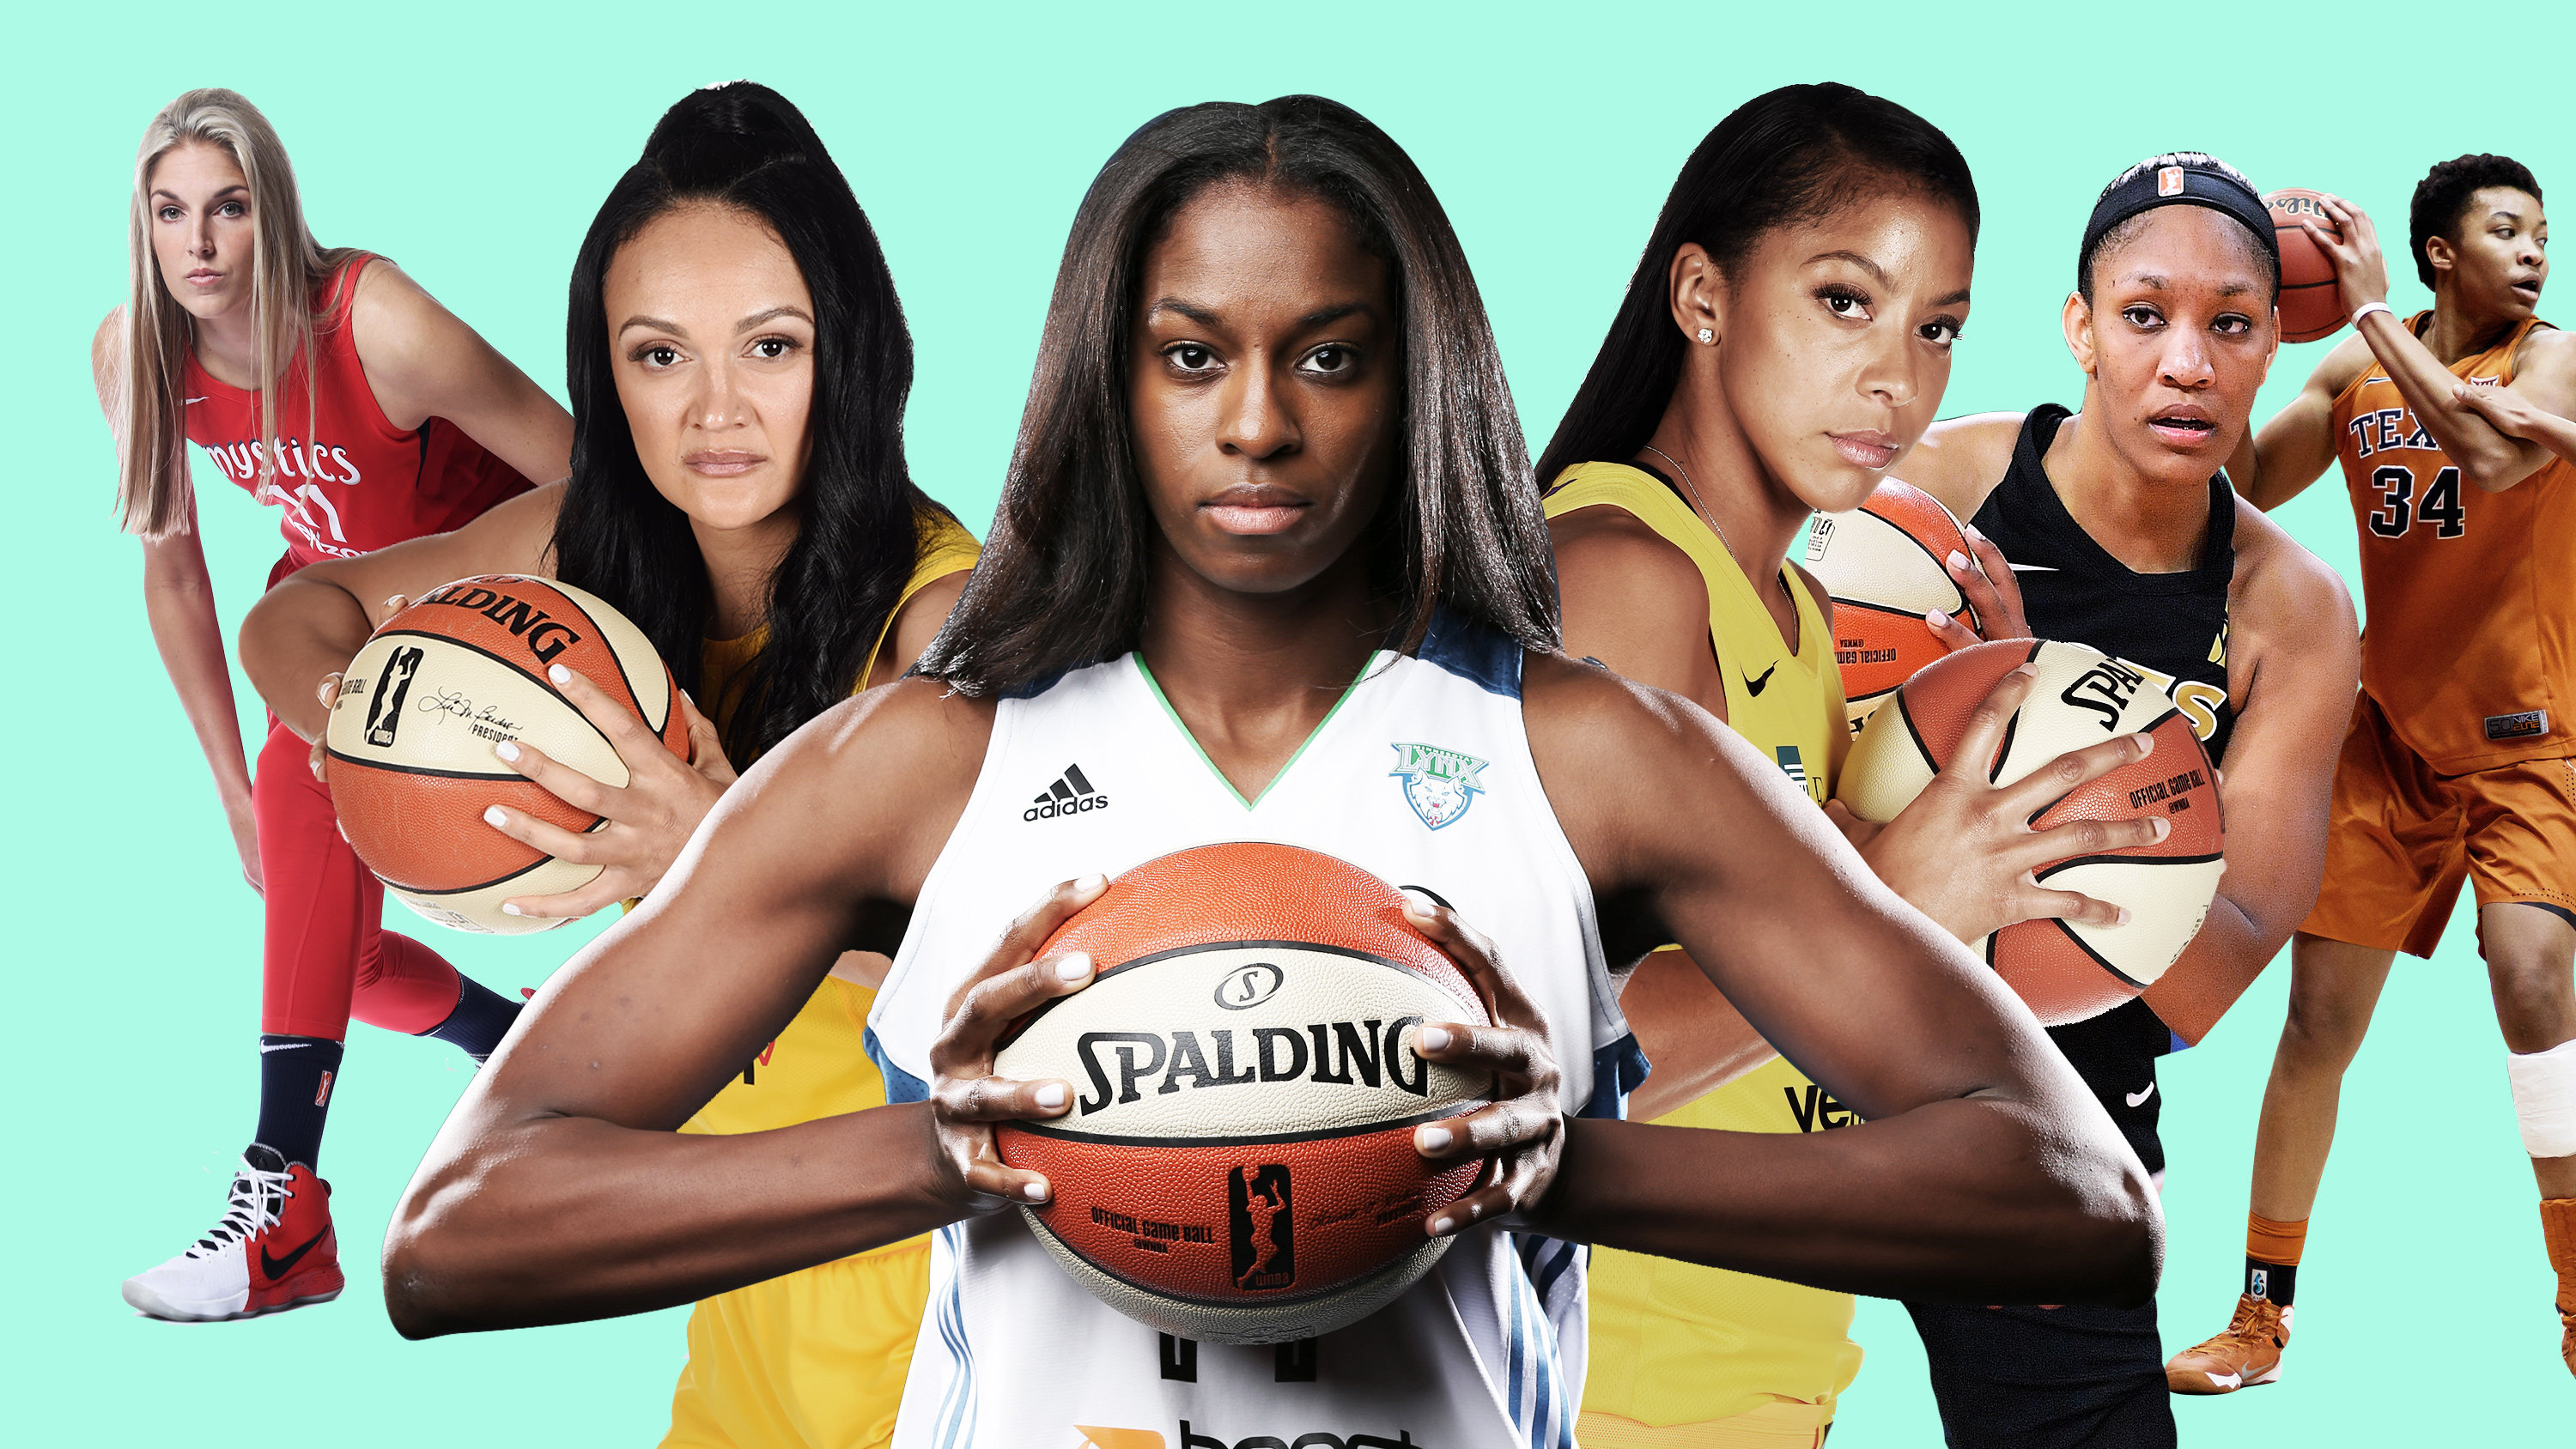 'Get back into the kitchen': A WNBA roundtable on sexism in basketball